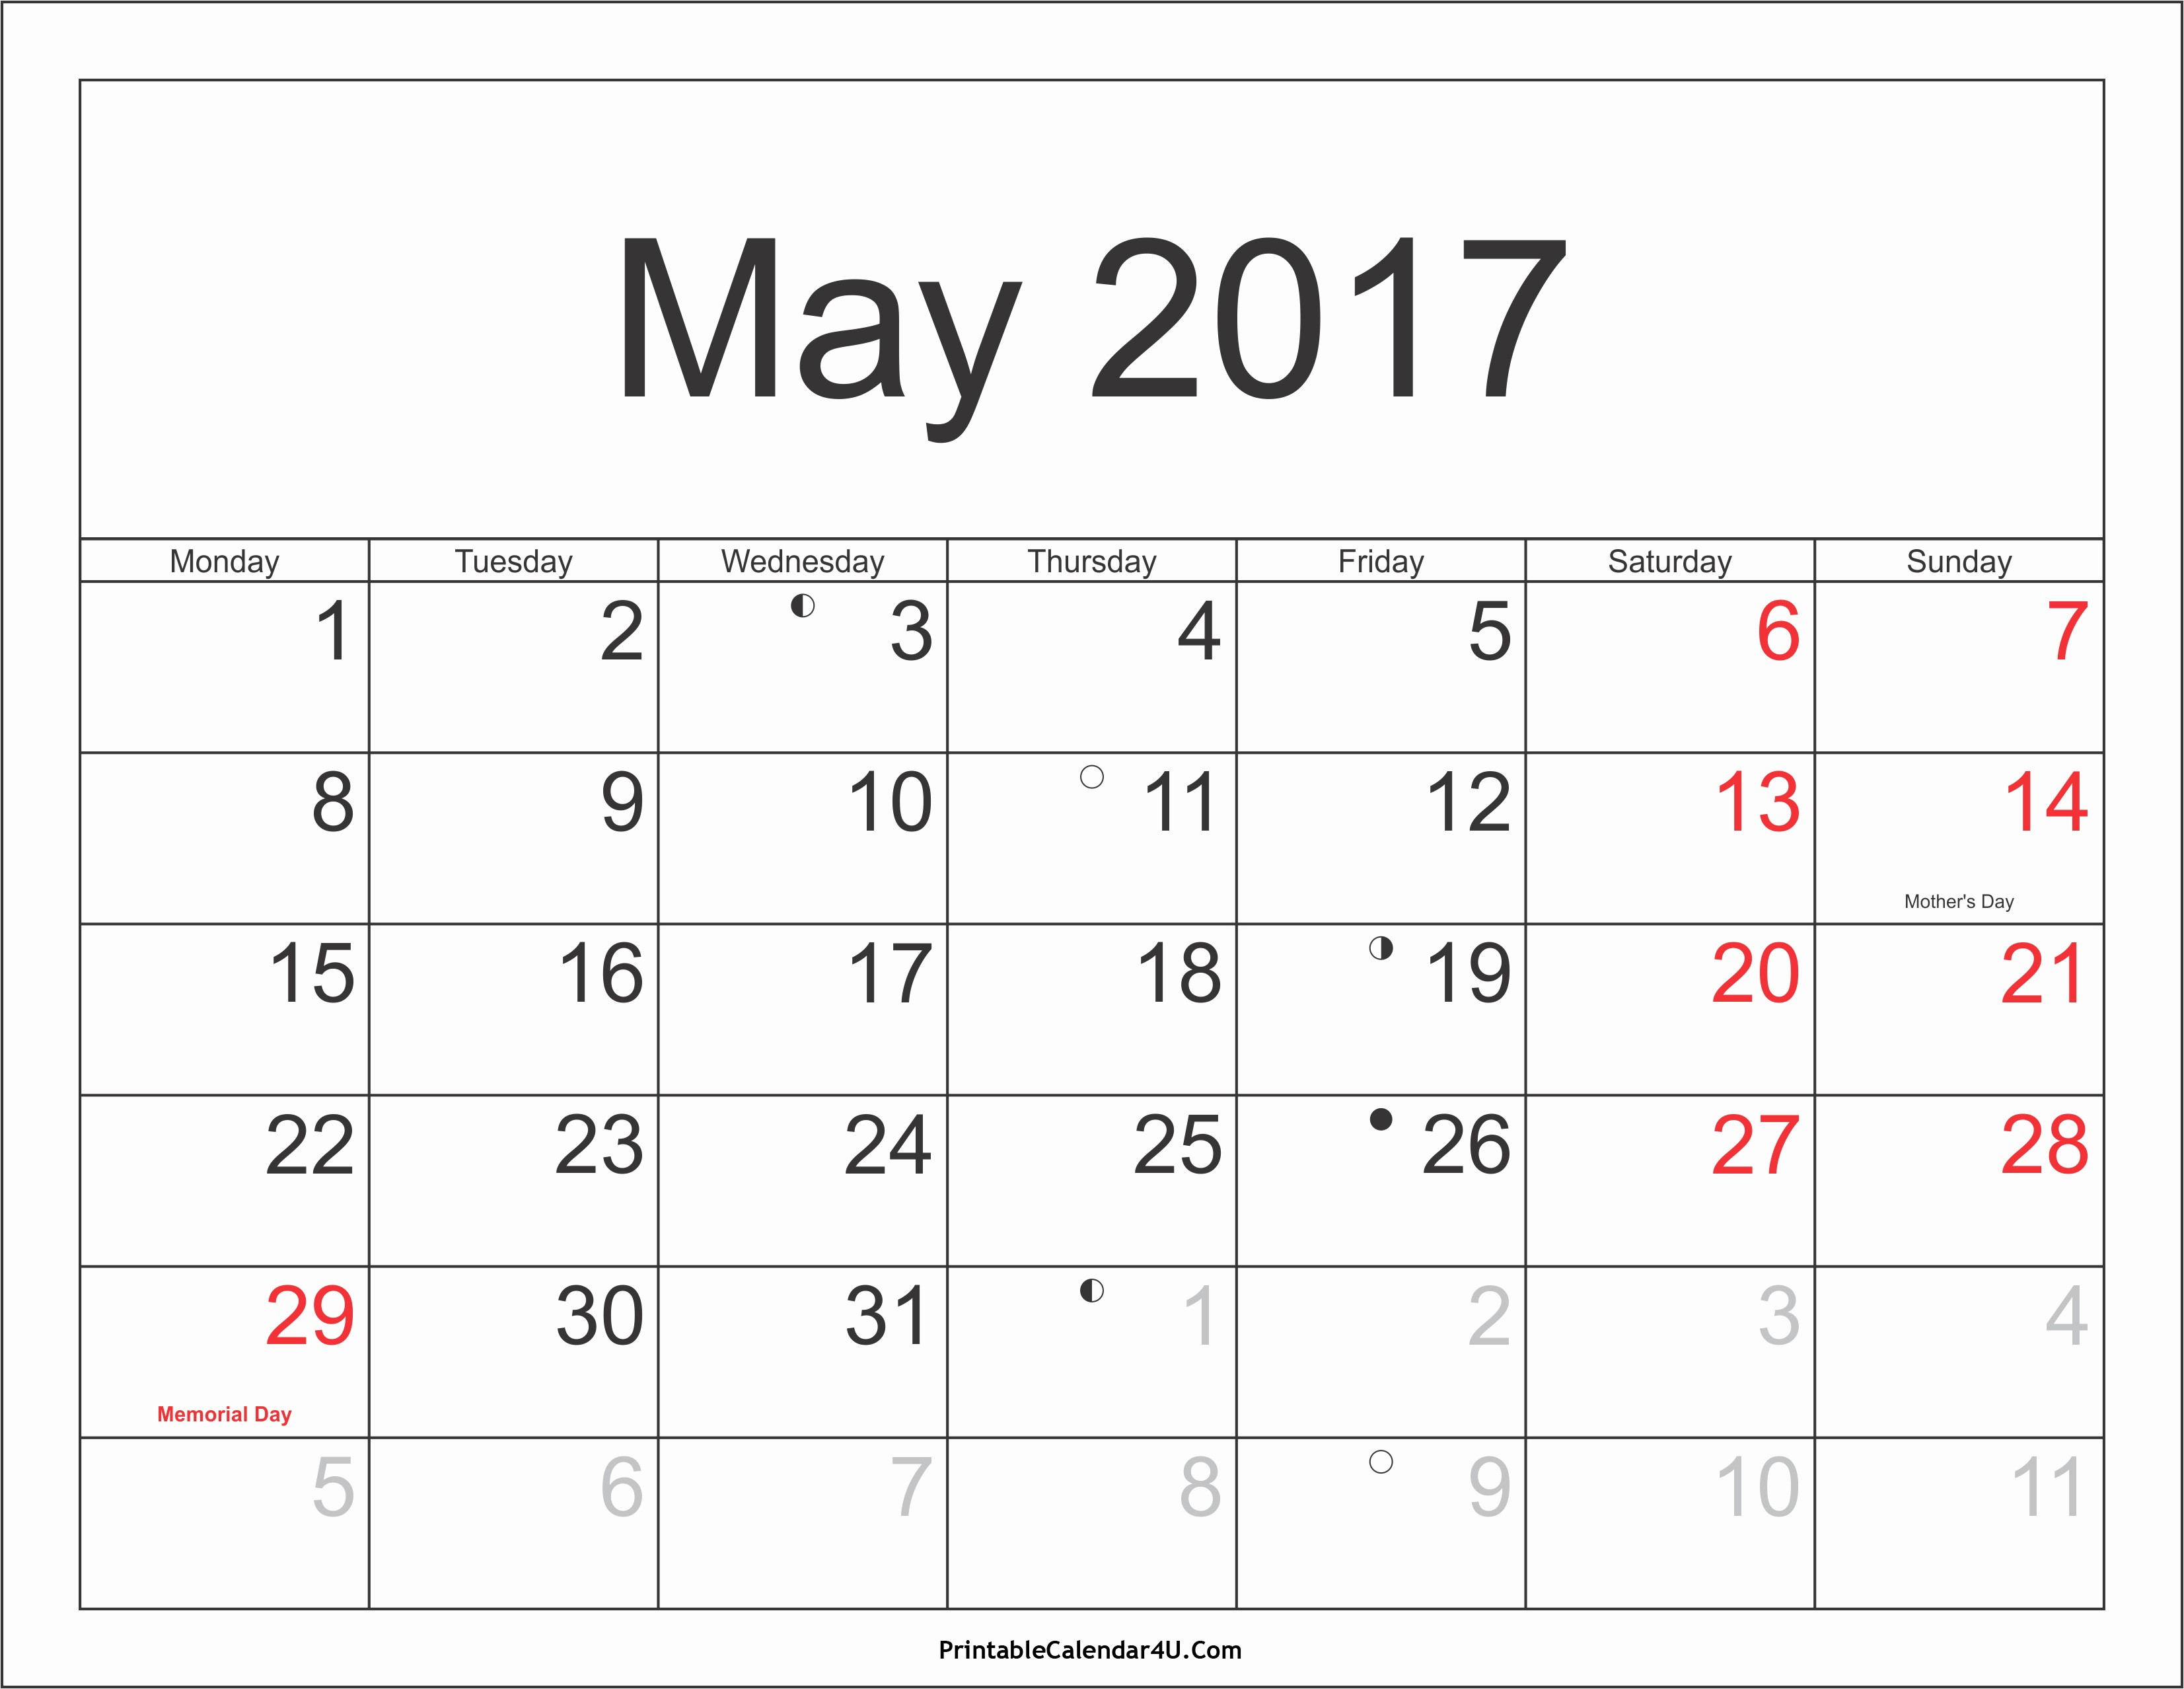 2017-2018 Printable Calendar Fresh May 2018 Calendar Printable with Holidays